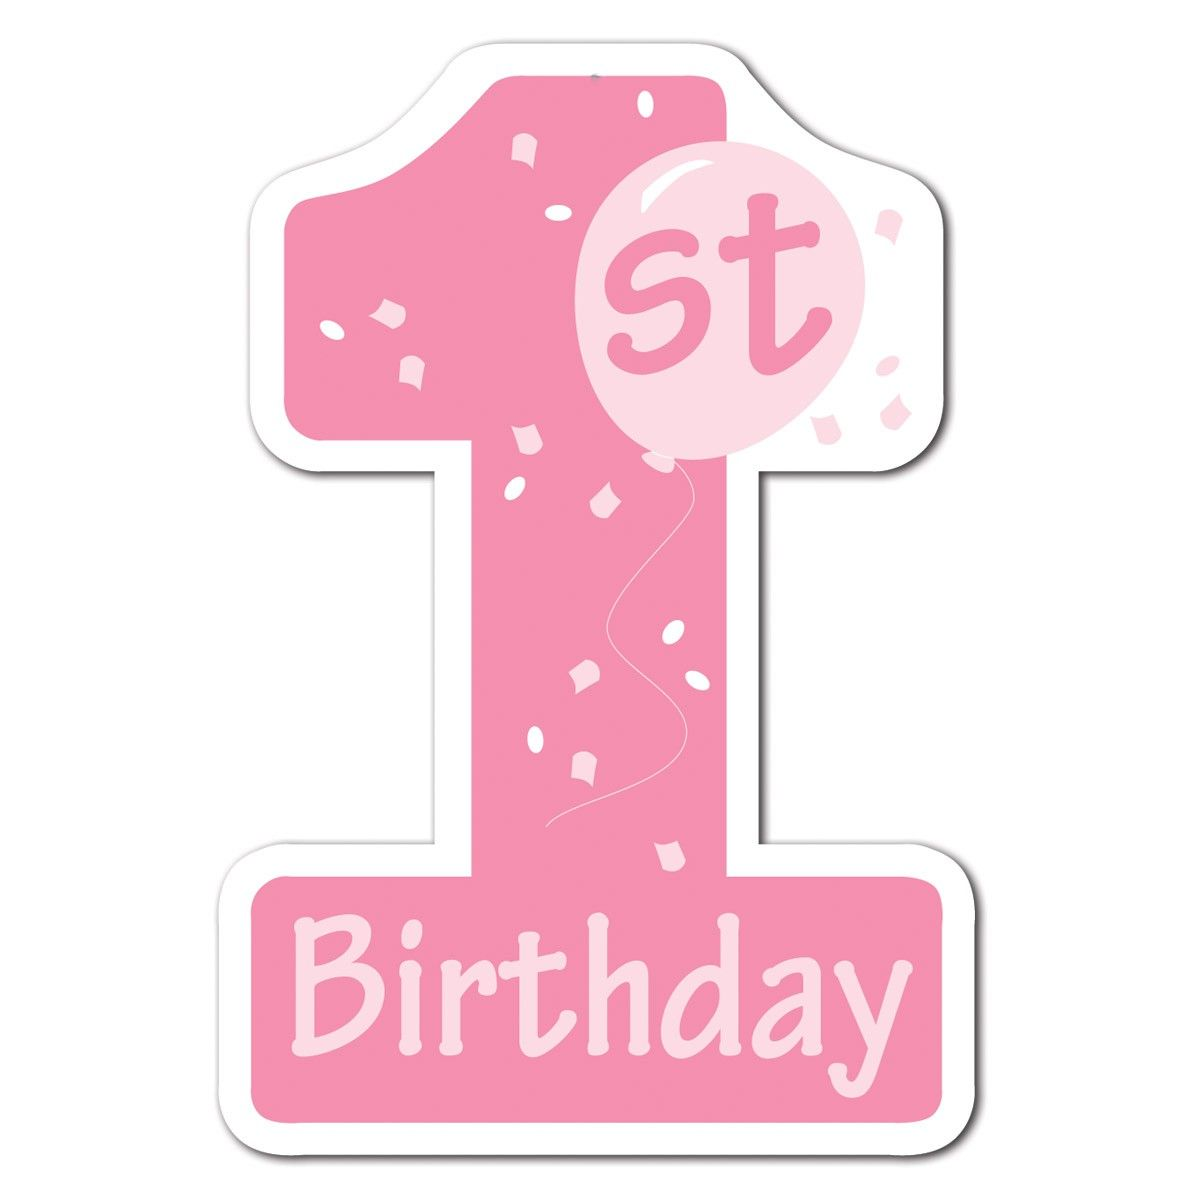 1st birthday clipart clipartfest 1st birthday minnie mouse rh pinterest com 1st birthday clipart girl 1st birthday clipart images